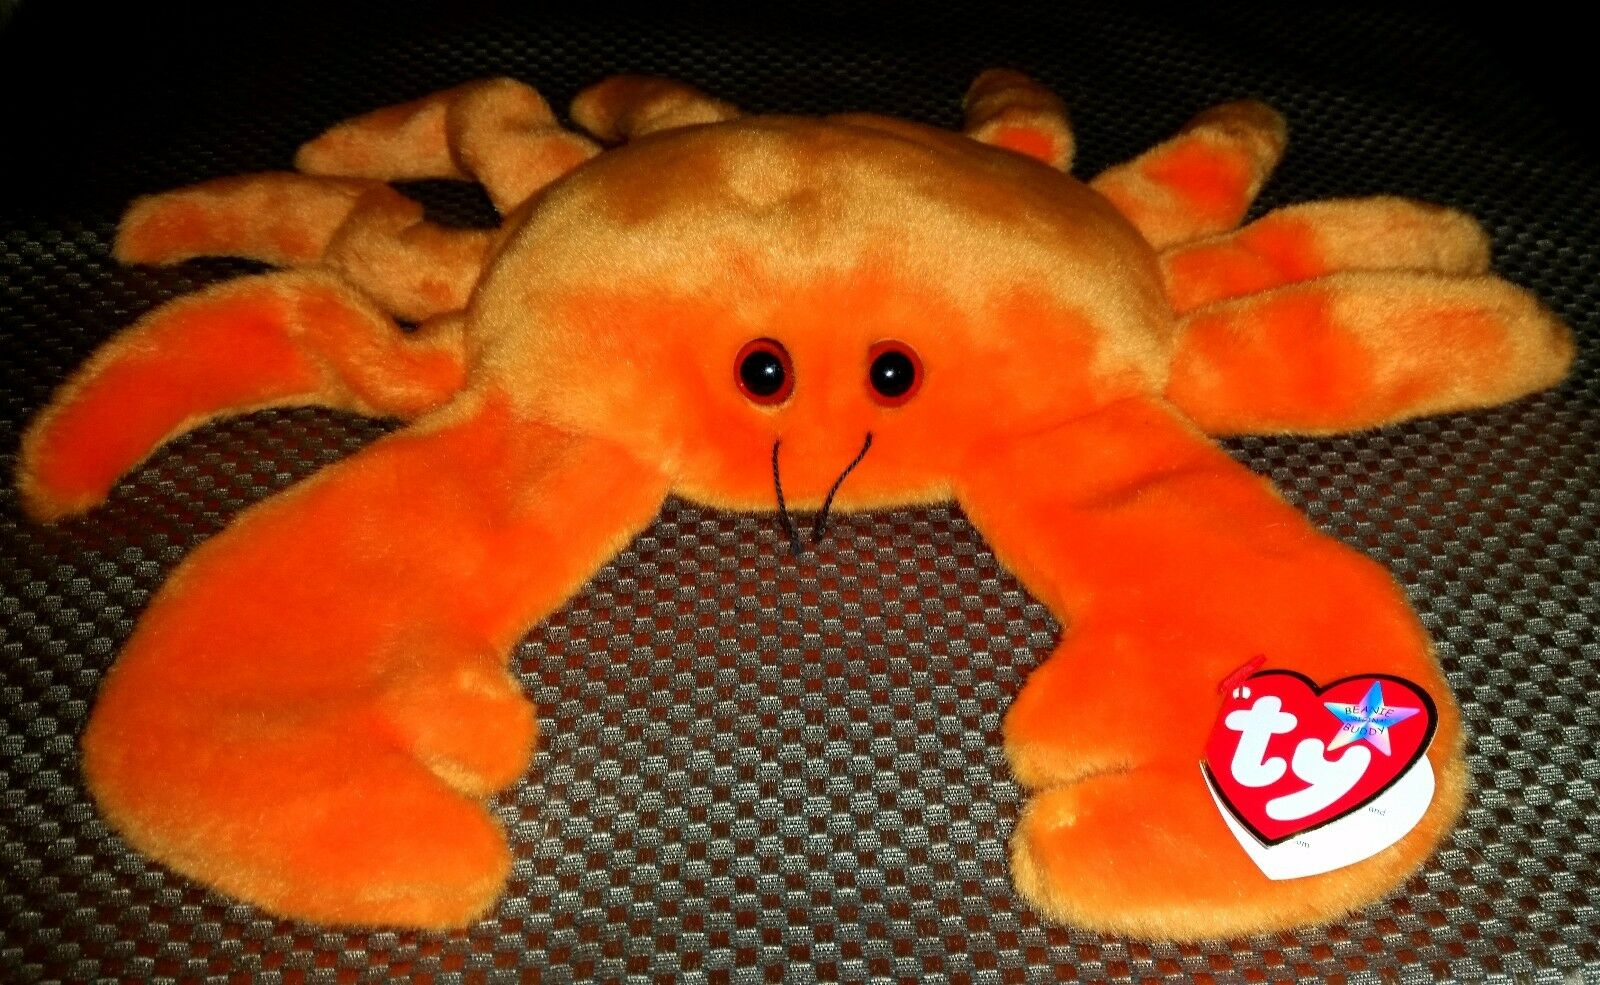 VTG Error Rare Retired 1999 TY Digger Beanie Buddies Orange Crab 15